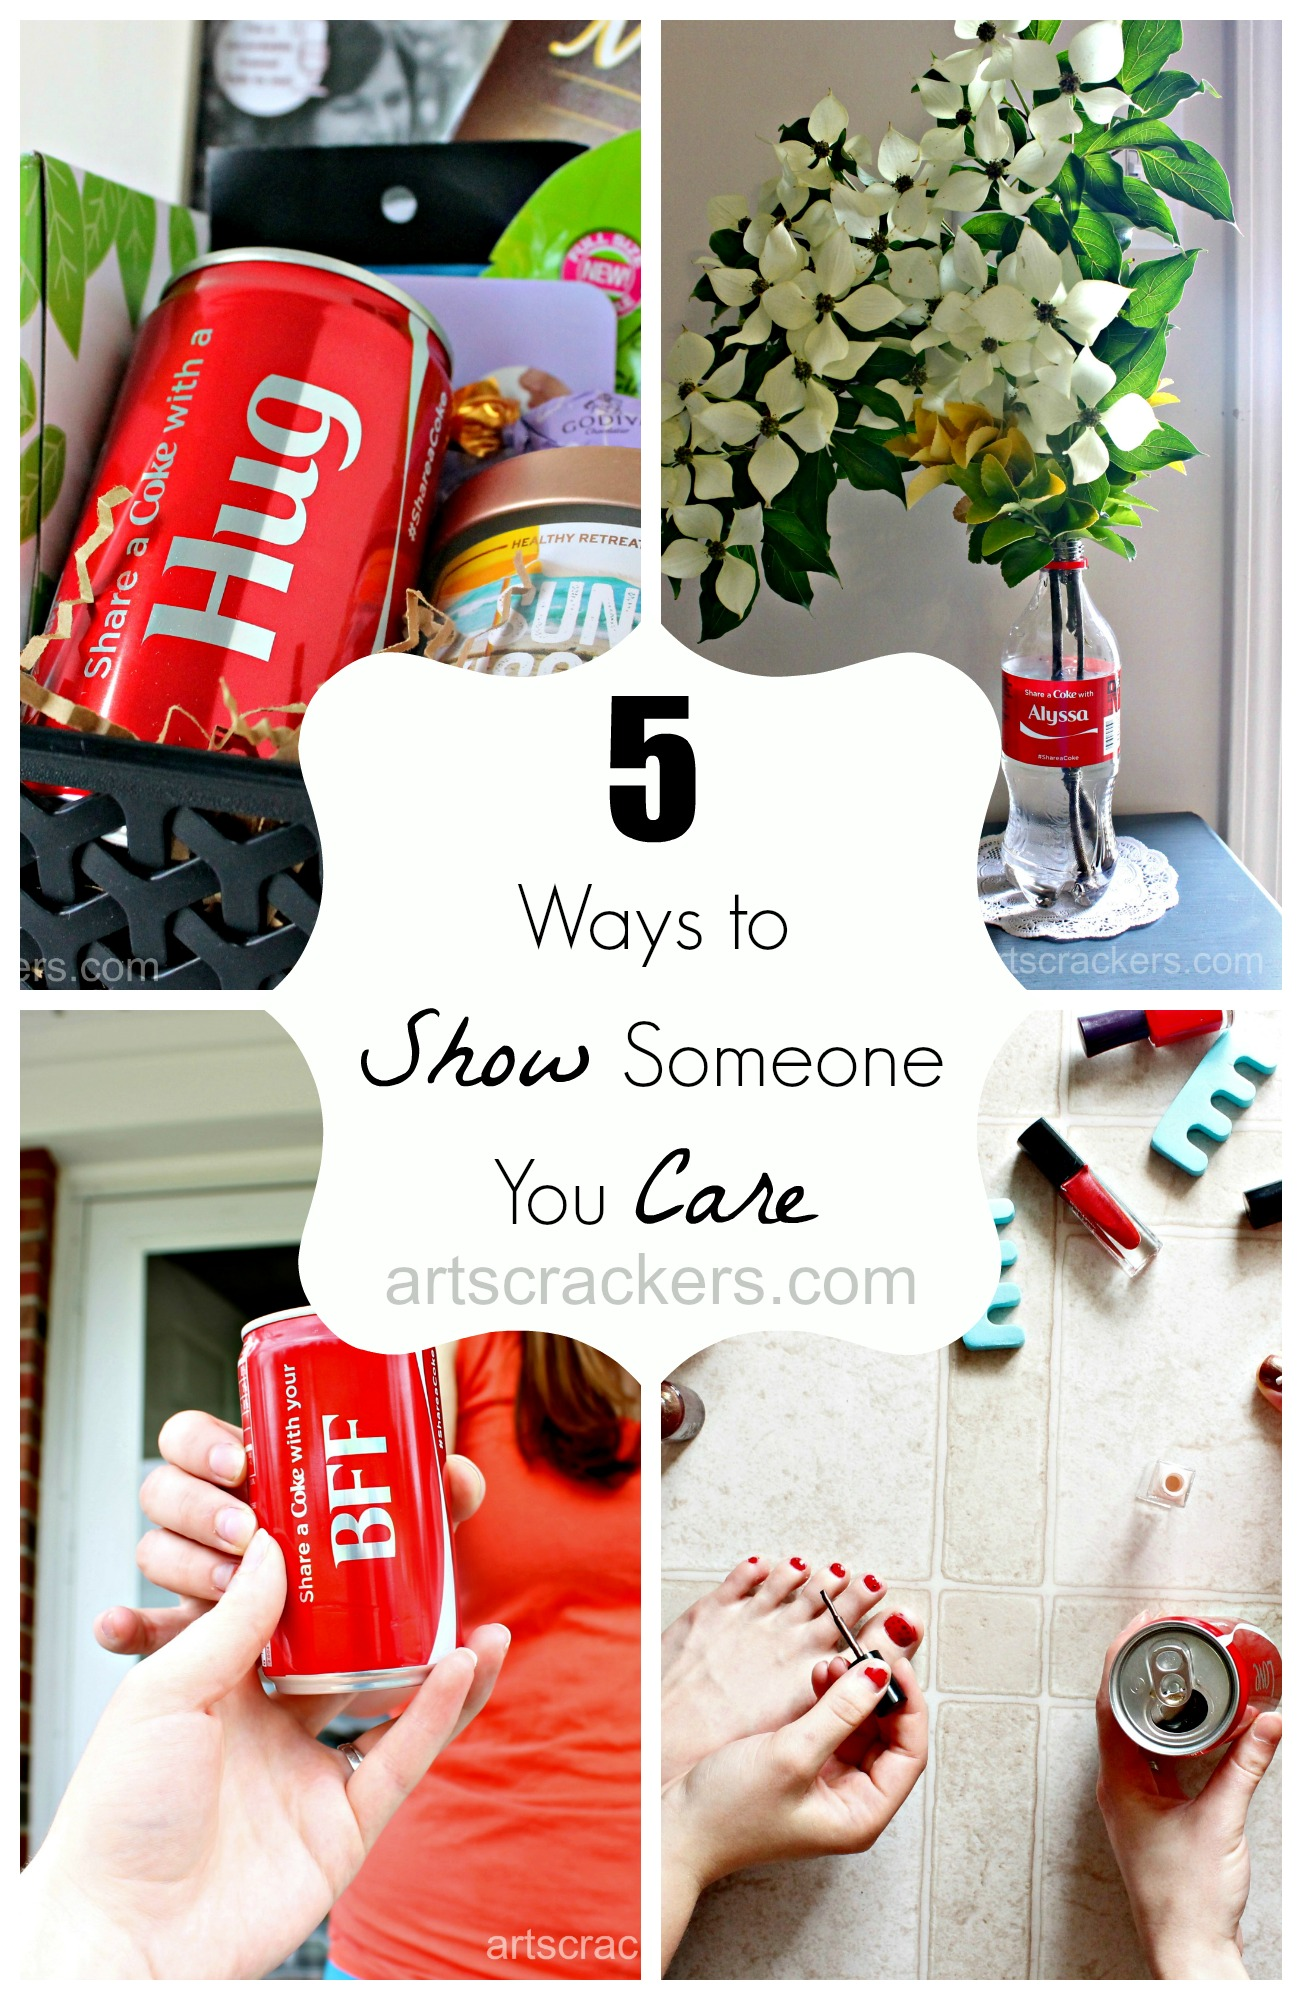 Coca-Cola 5 Ways to Show Someone You Care. Click the picture to read more.